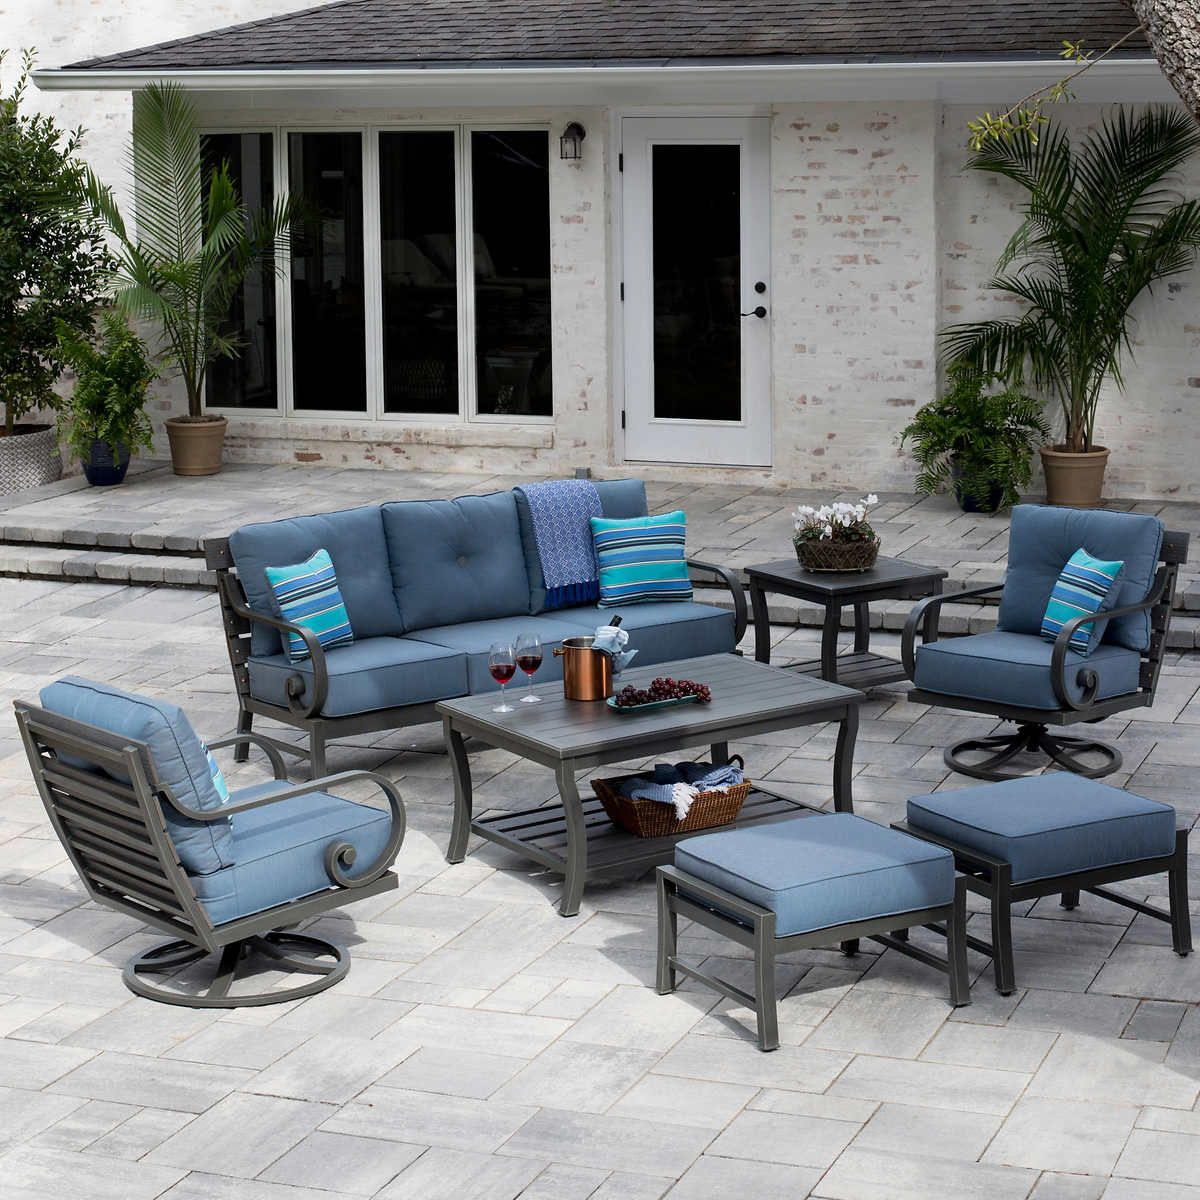 3000 Costco Deep seating, Seating, Outdoor furniture sets